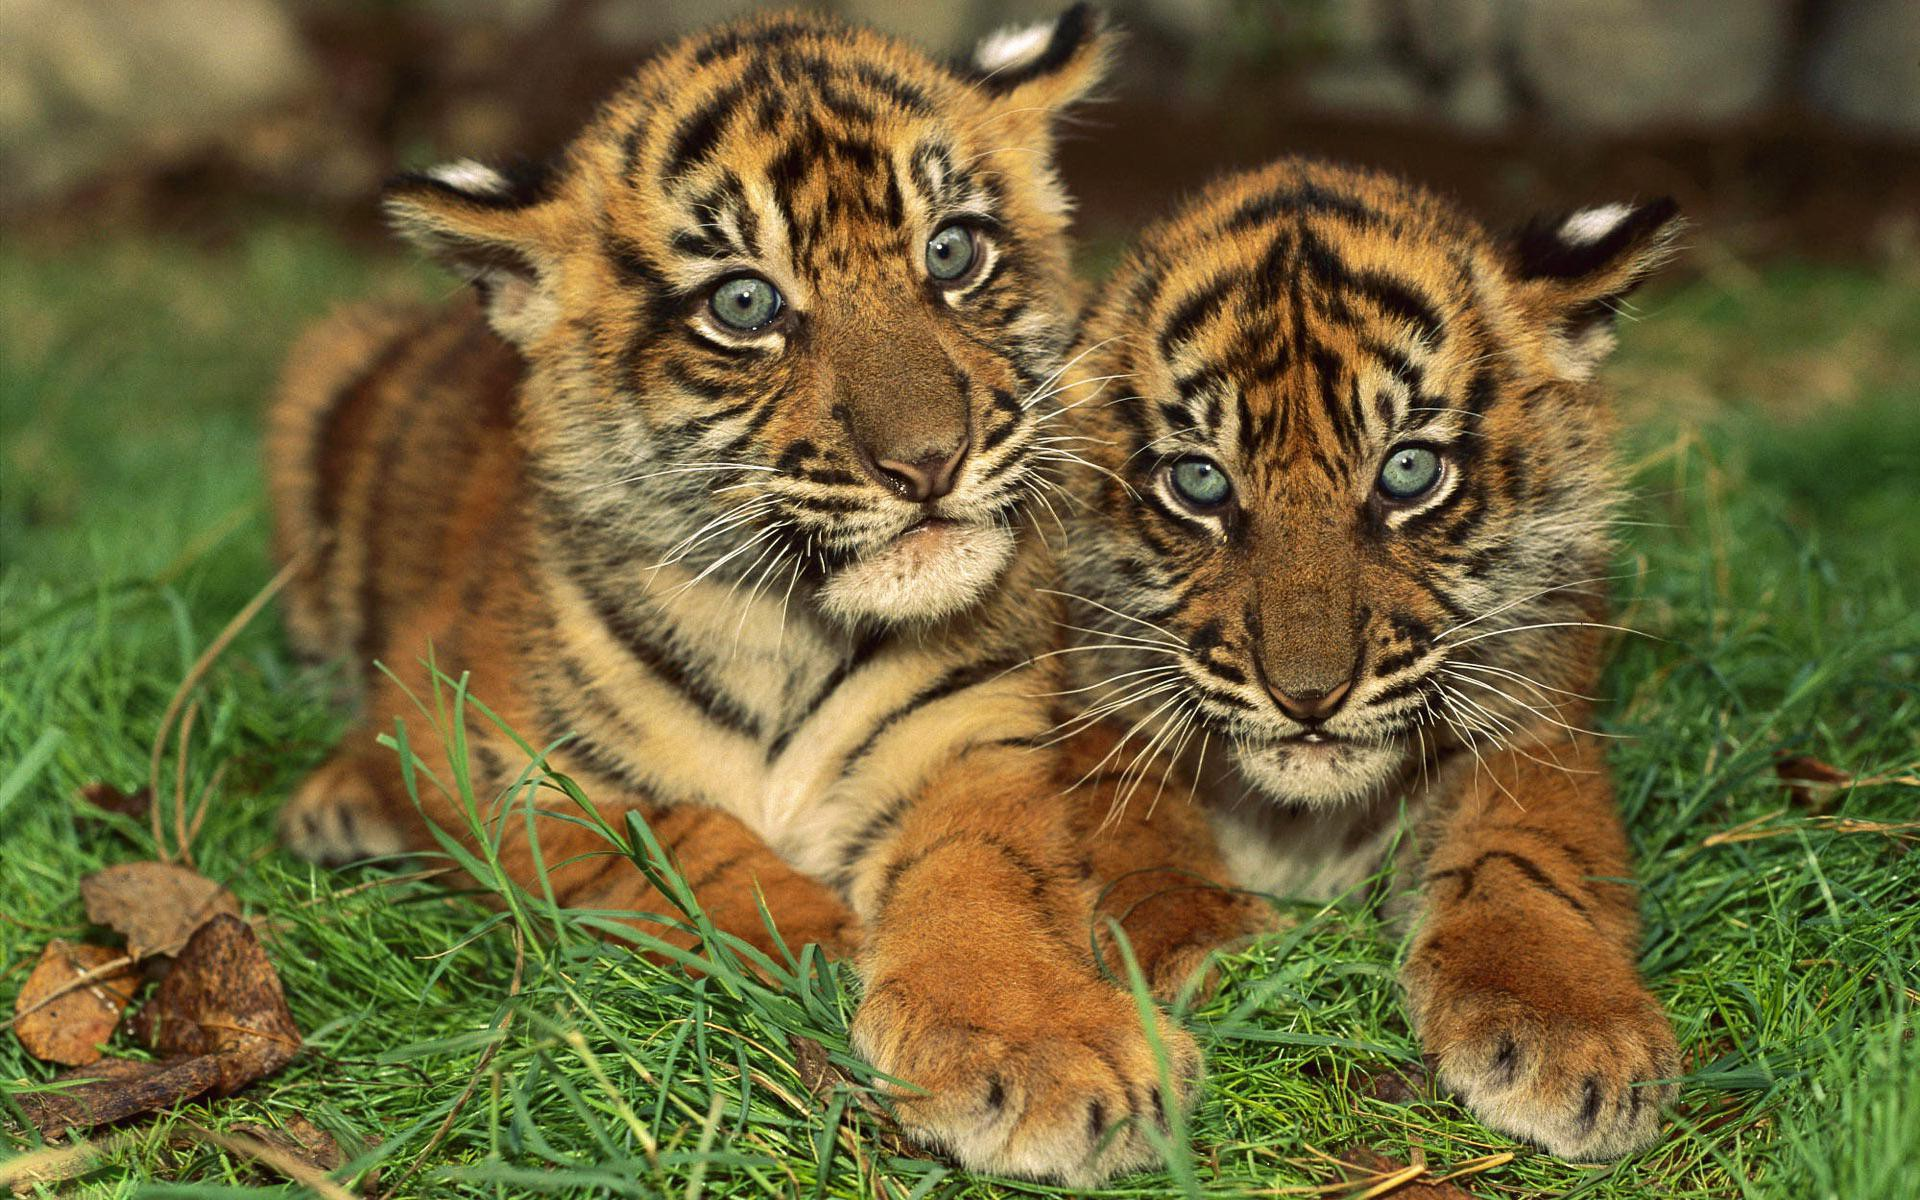 PC, Laptop 44 Baby Tiger Wallpapers in FHD-COB37, SHunVMall Graphics